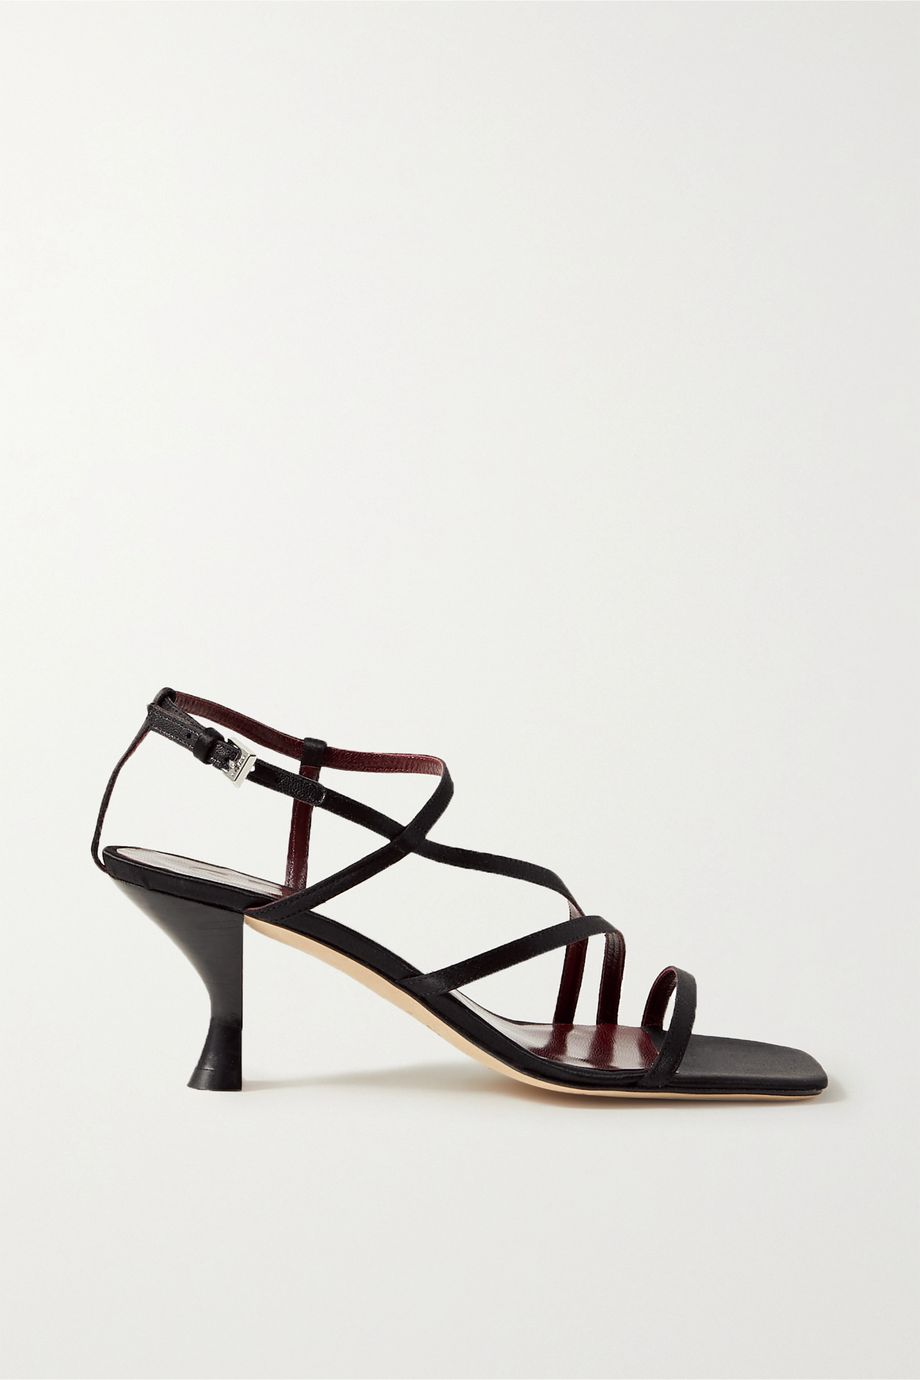 STAUD Gita satin sandals